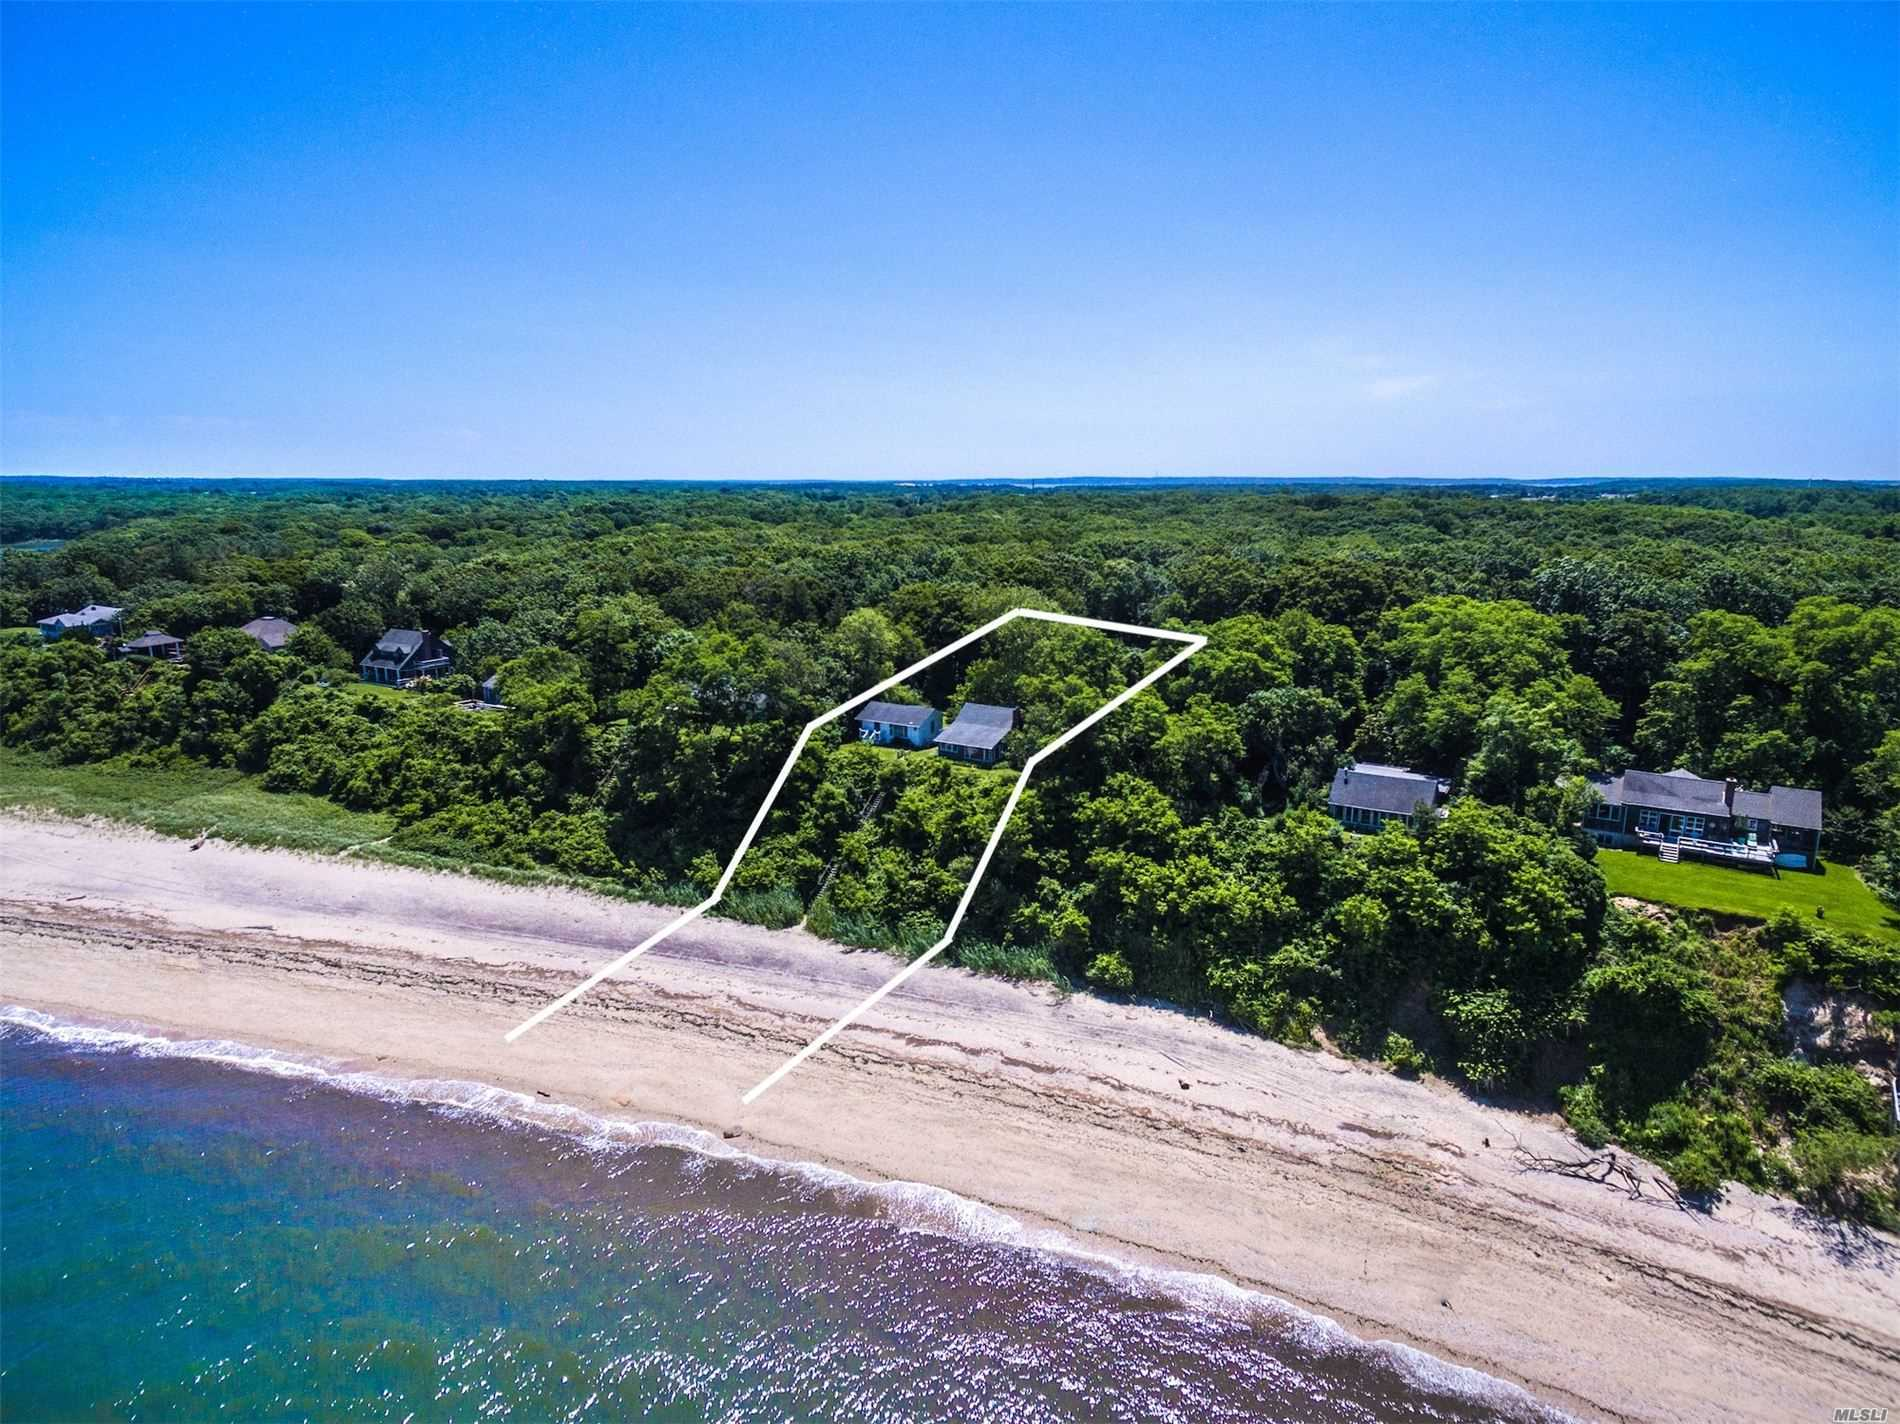 Tranquil & Private. Nestled Atop This Well Protected Sound Front Property Rests This Quintessential North Fork Residence & Guest Cottage. Enjoy Expansive 180 Degree Views Of The Li Sound & Private Beach Access, W/ Native Vegetation & Protected Peconic Land Trust Land To The South Of The Property. Main House Offers Newly Renovated Open Living W/ 2 Beds & 1 Full Bath, While The Guest Cottage Offers A Studio Type Set Up W/ Newly Renovated Full Bath. The Perfect Location To Escape From It All!